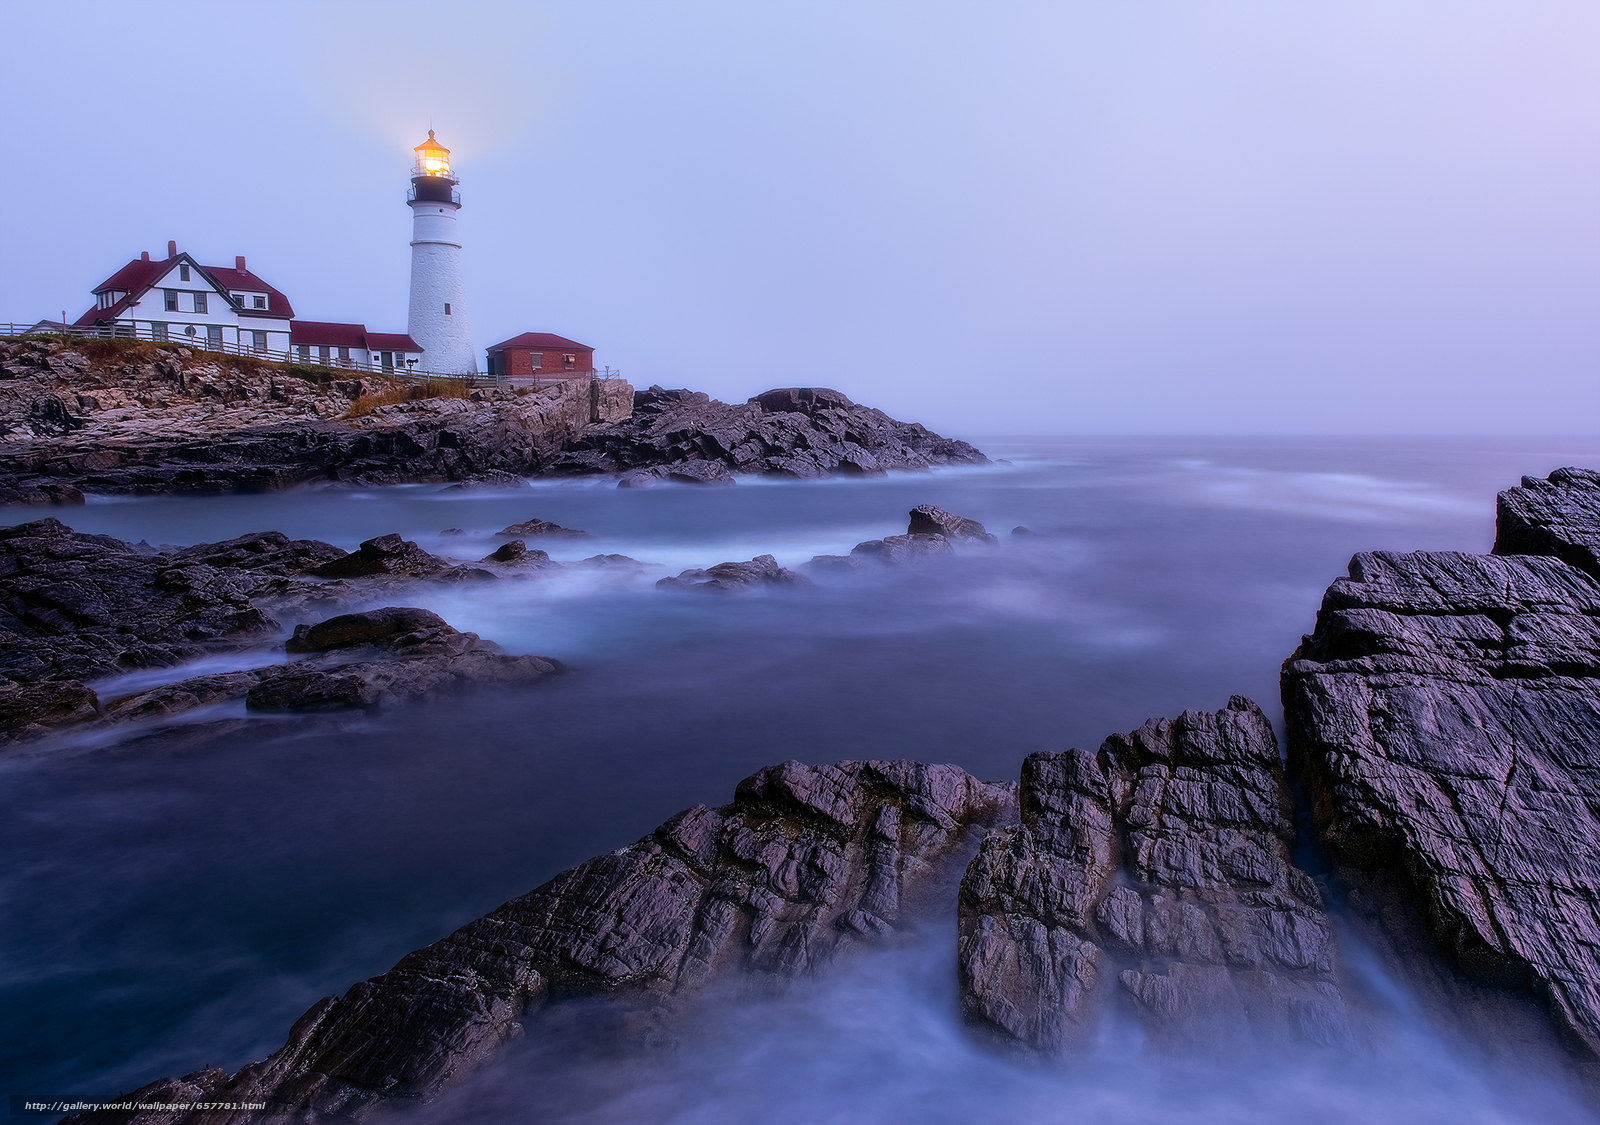 Download wallpaper Portland Head Light,  Cape Elizabeth,  Maine,  lighthouse free desktop wallpaper in the resolution 2000x1406 — picture №657781